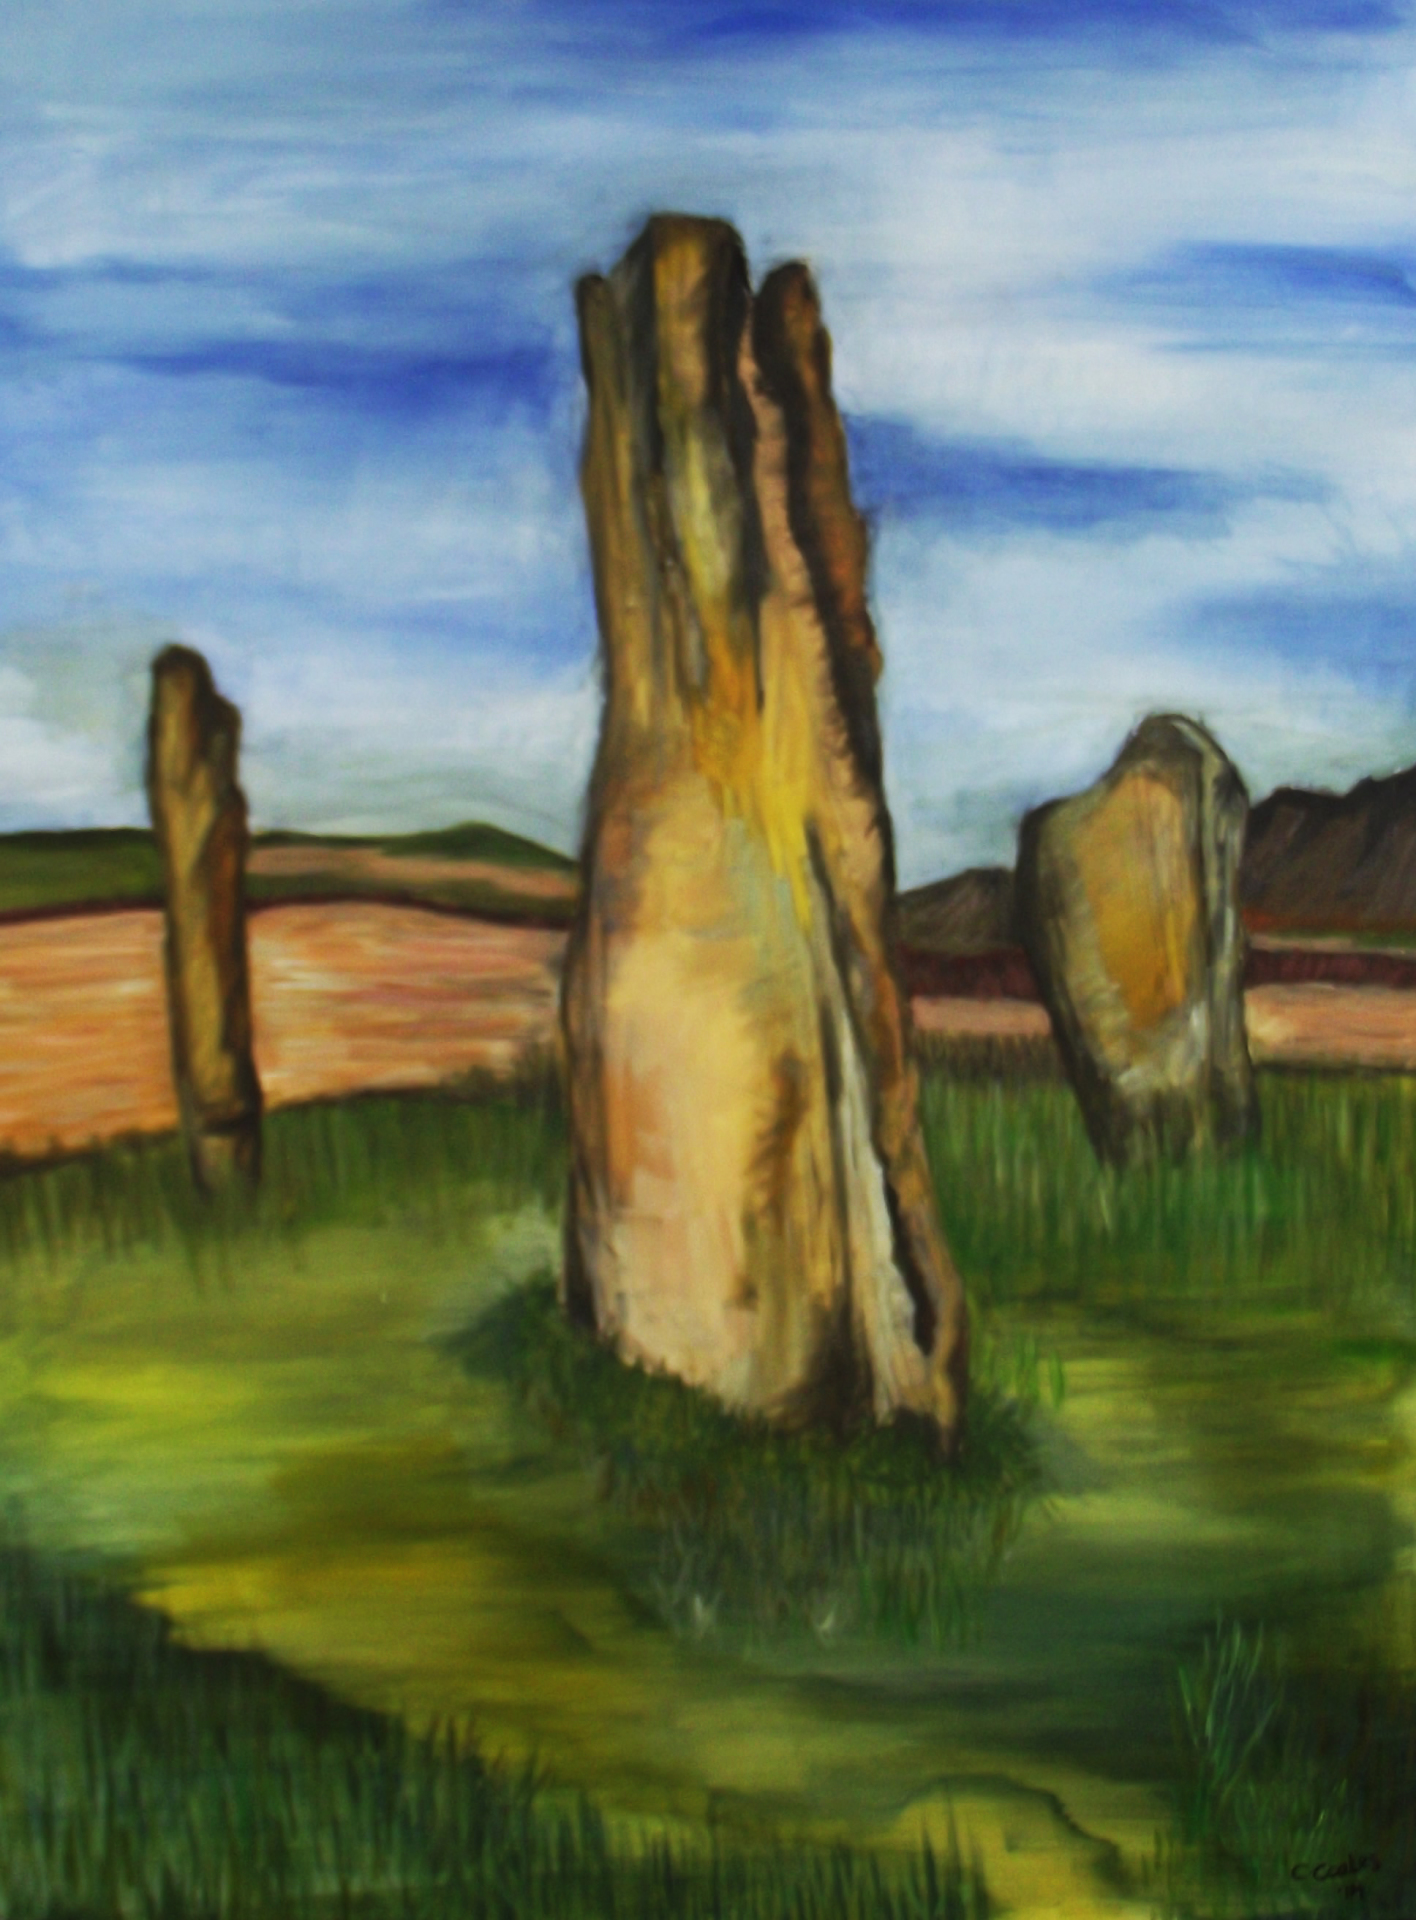 Machrie Moor Stone Circle, Isle of Arran